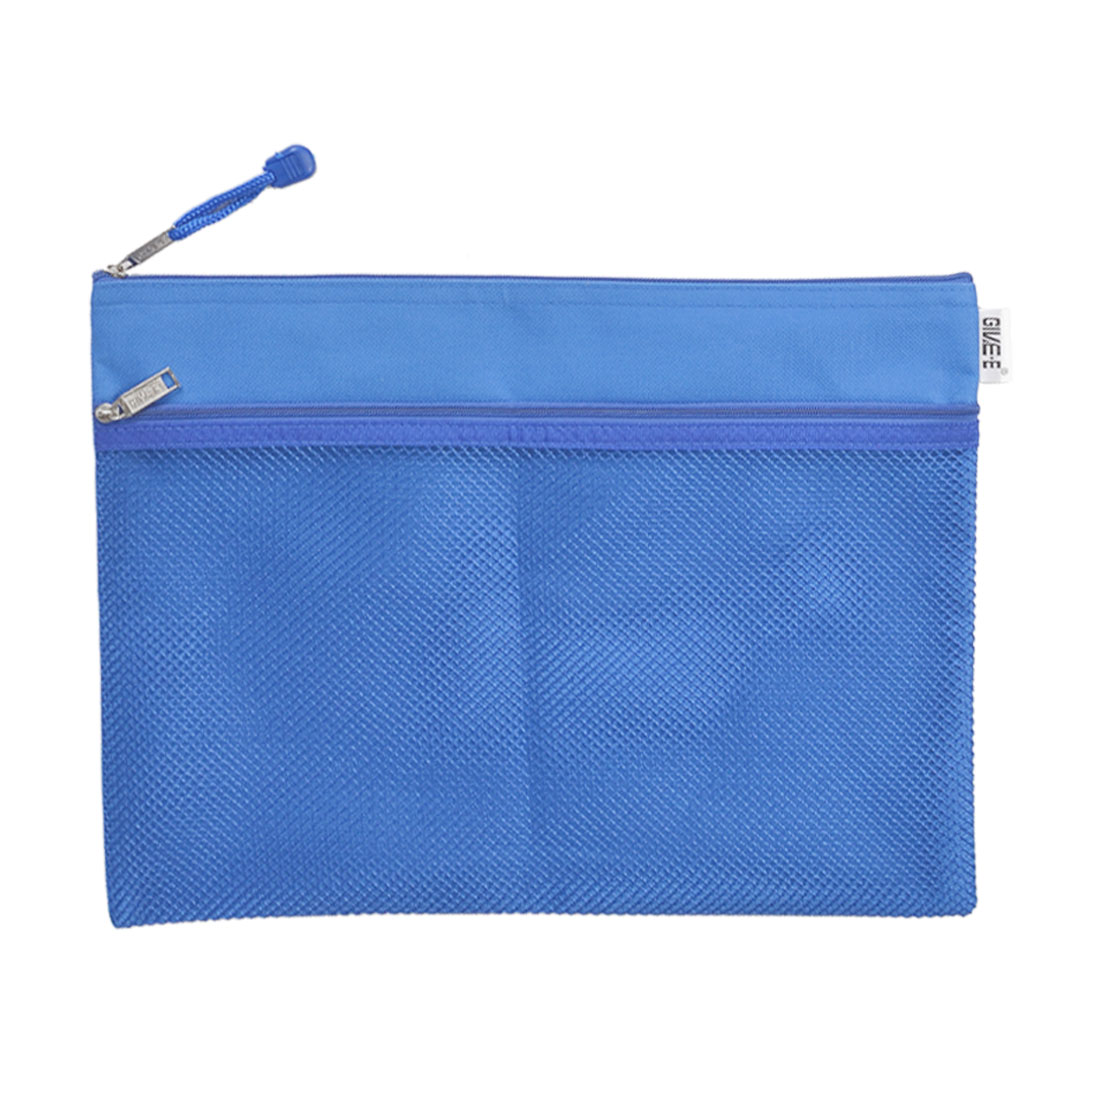 Two Compartments A4 Paper Pen Holder Zippered PVC File Folder Bags Blue